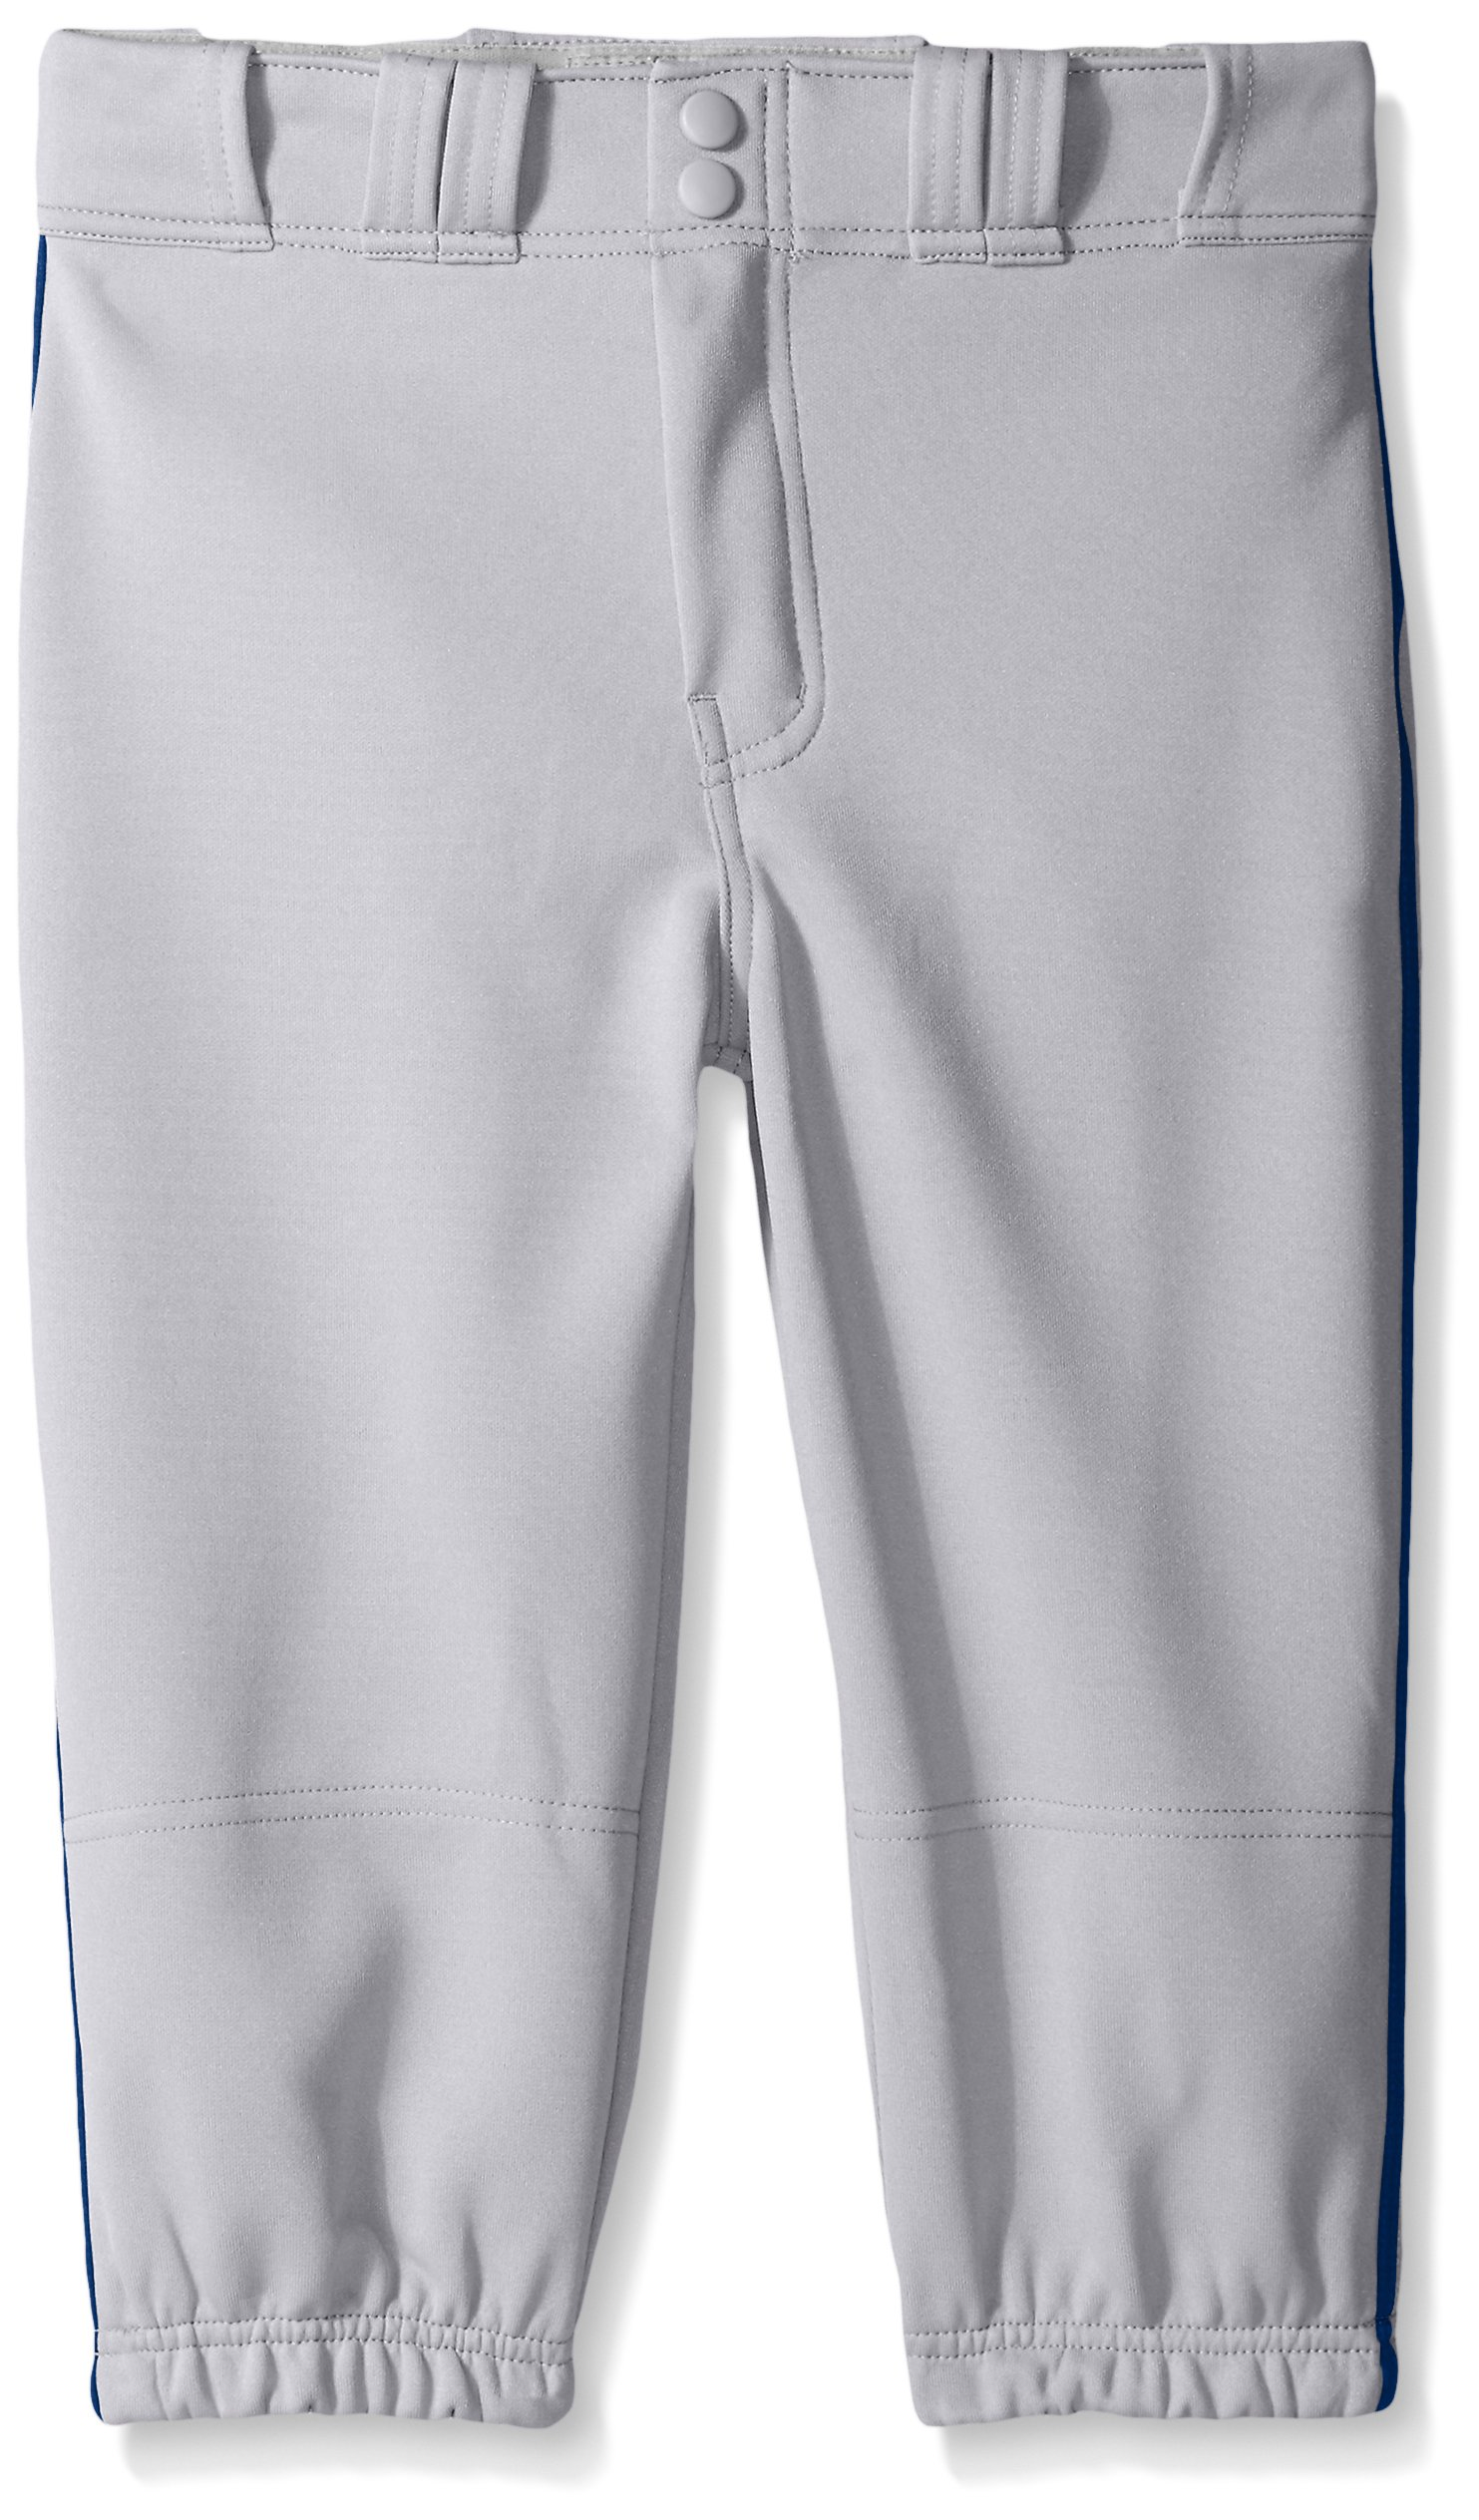 Easton Boys PRO Plus Piped Knicker, Grey/Navy, Medium by Easton